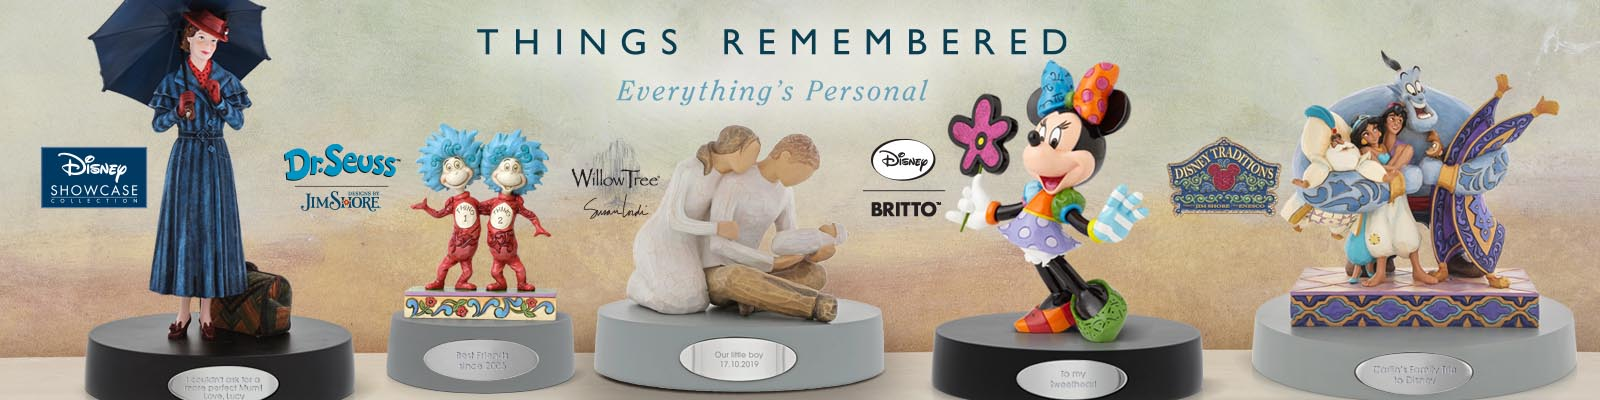 Things Remembered page banner